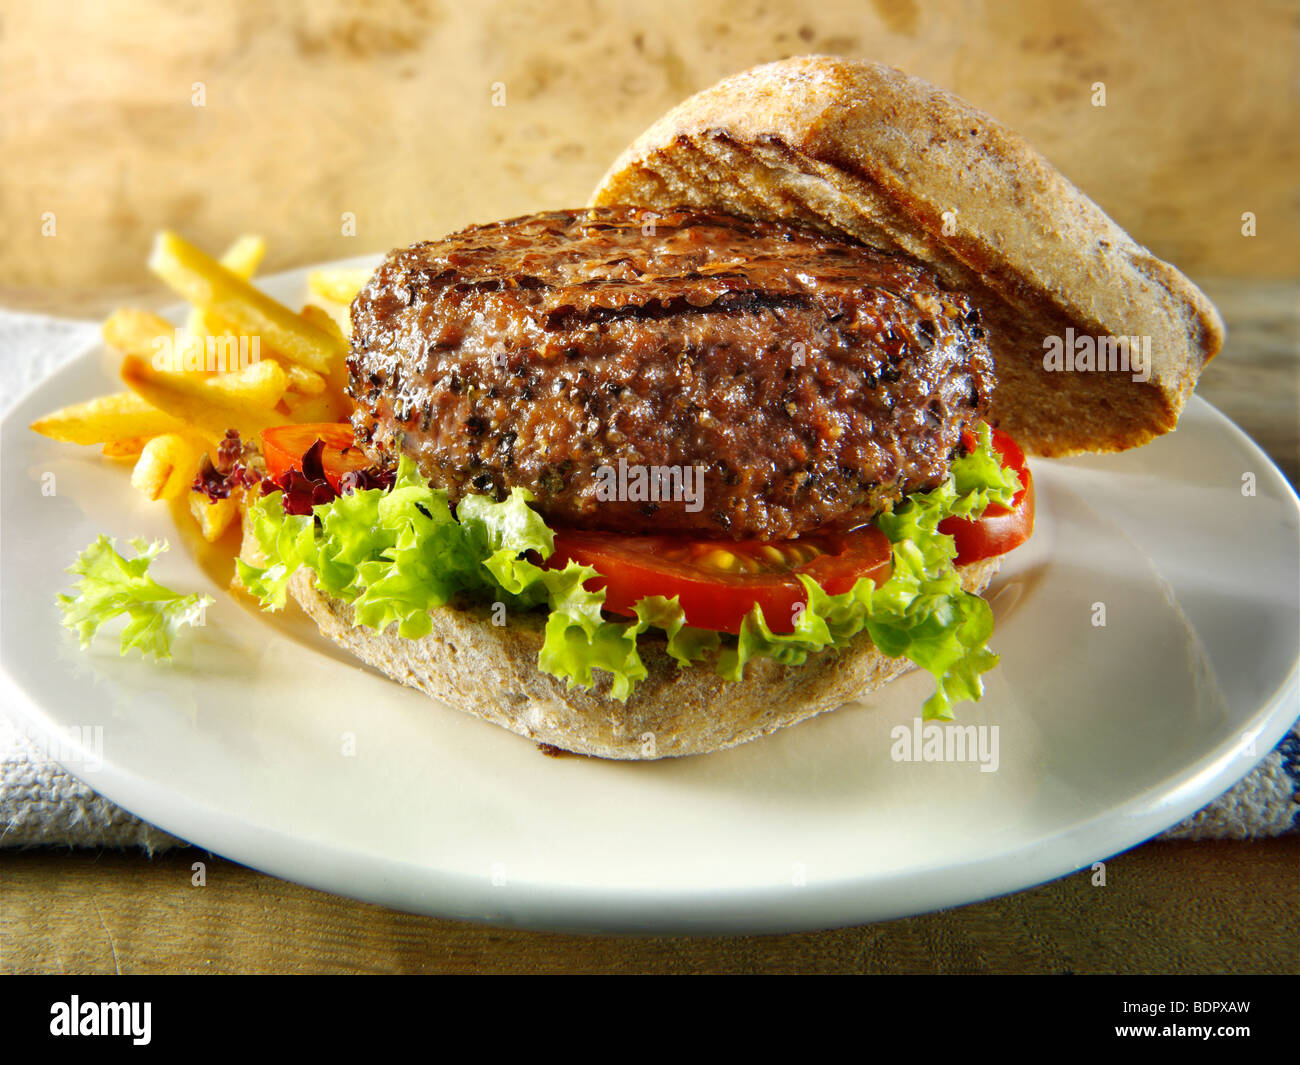 Peppered beef burger with chips and wholemeal bun - Stock Image